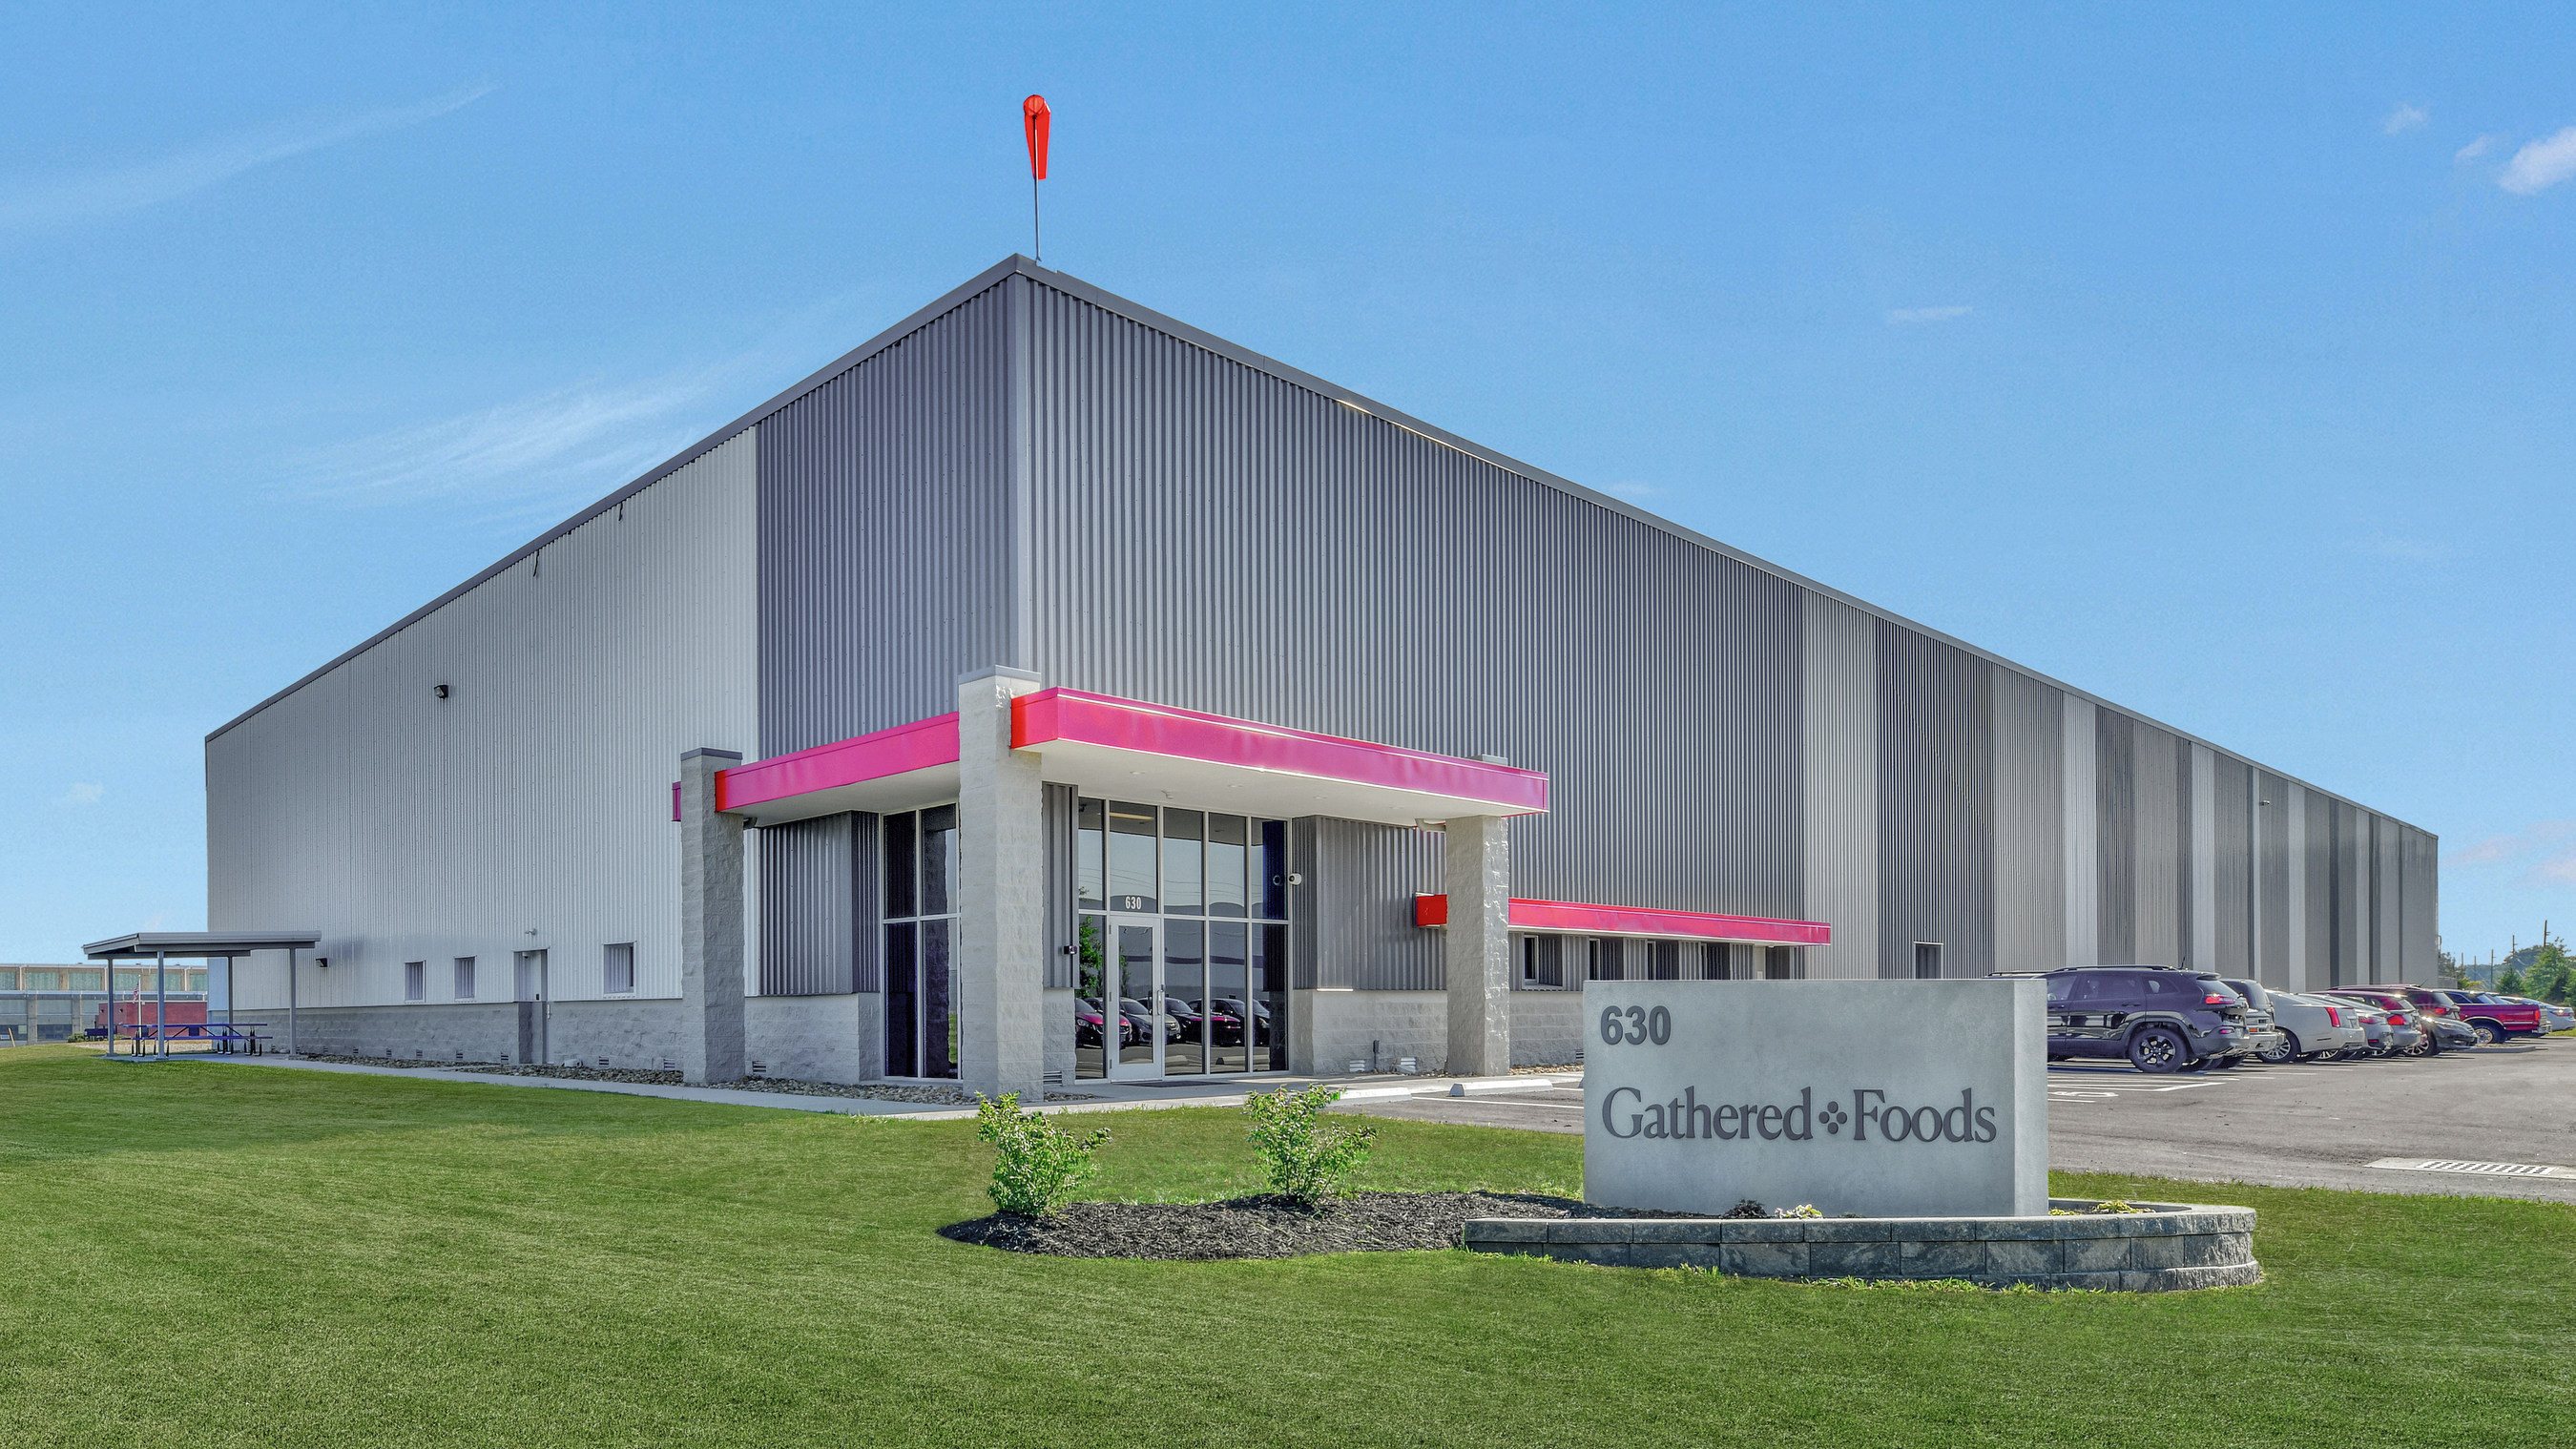 Plant-based Seafood Producers Gathered Foods Opens New Production Facility